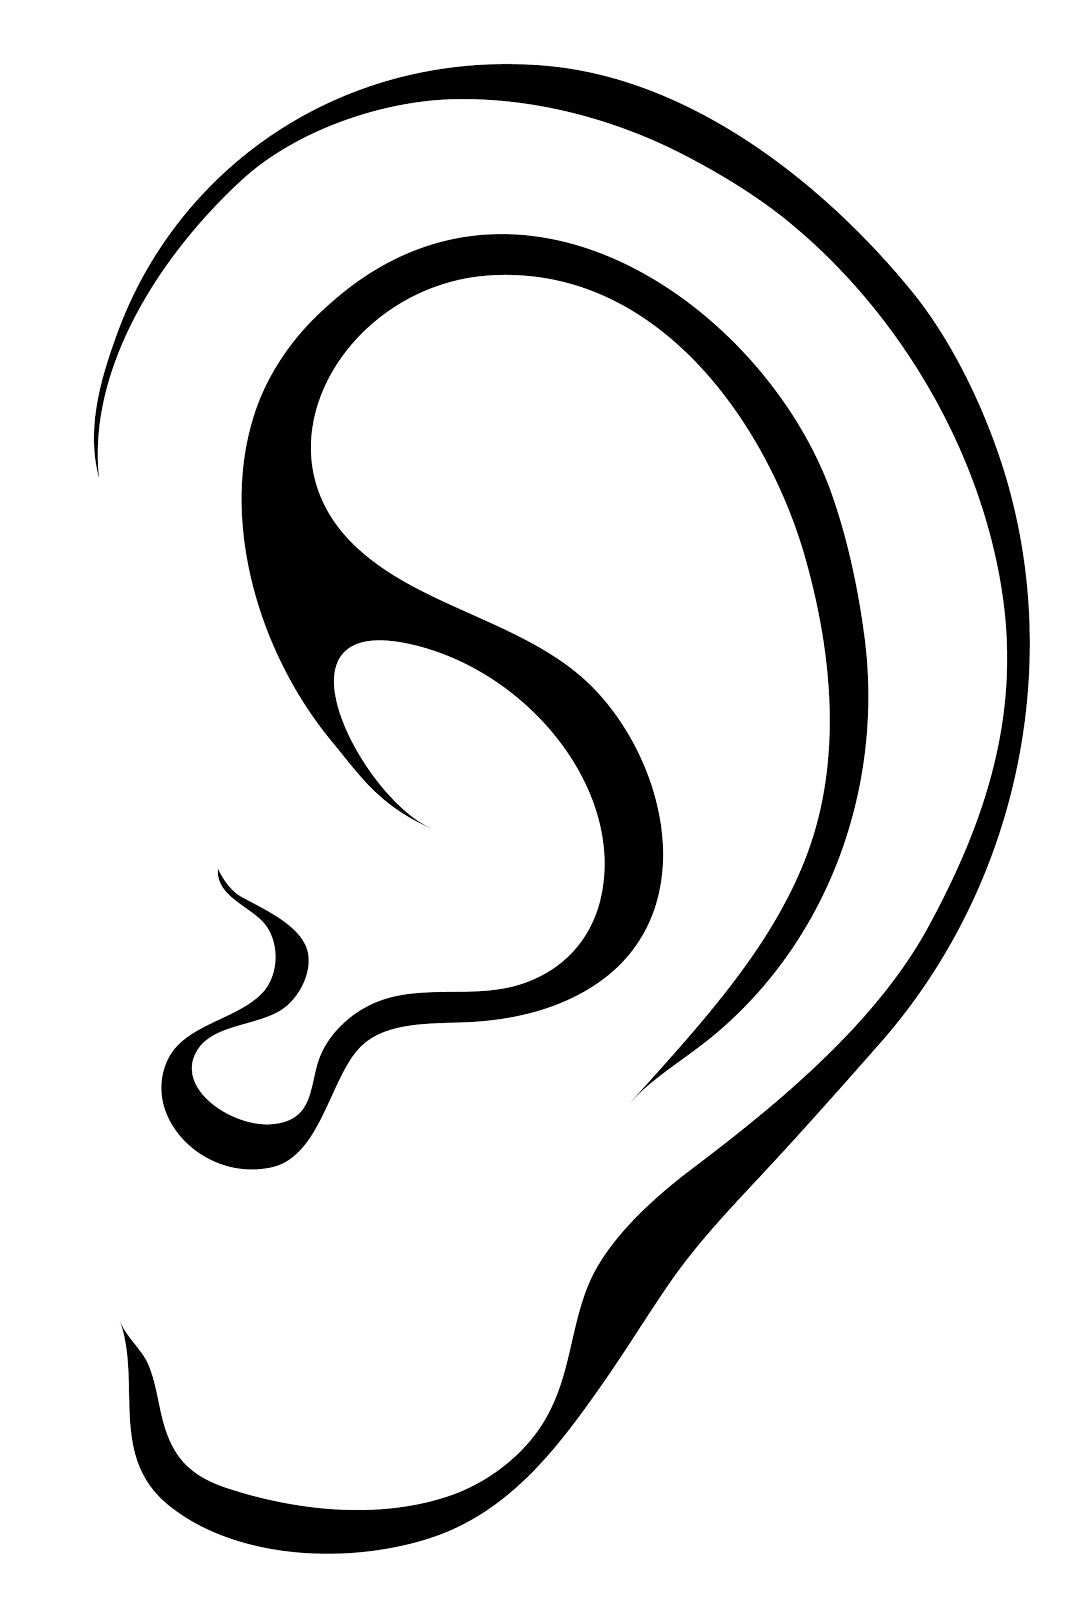 Awesome ears design digital. Ear clipart